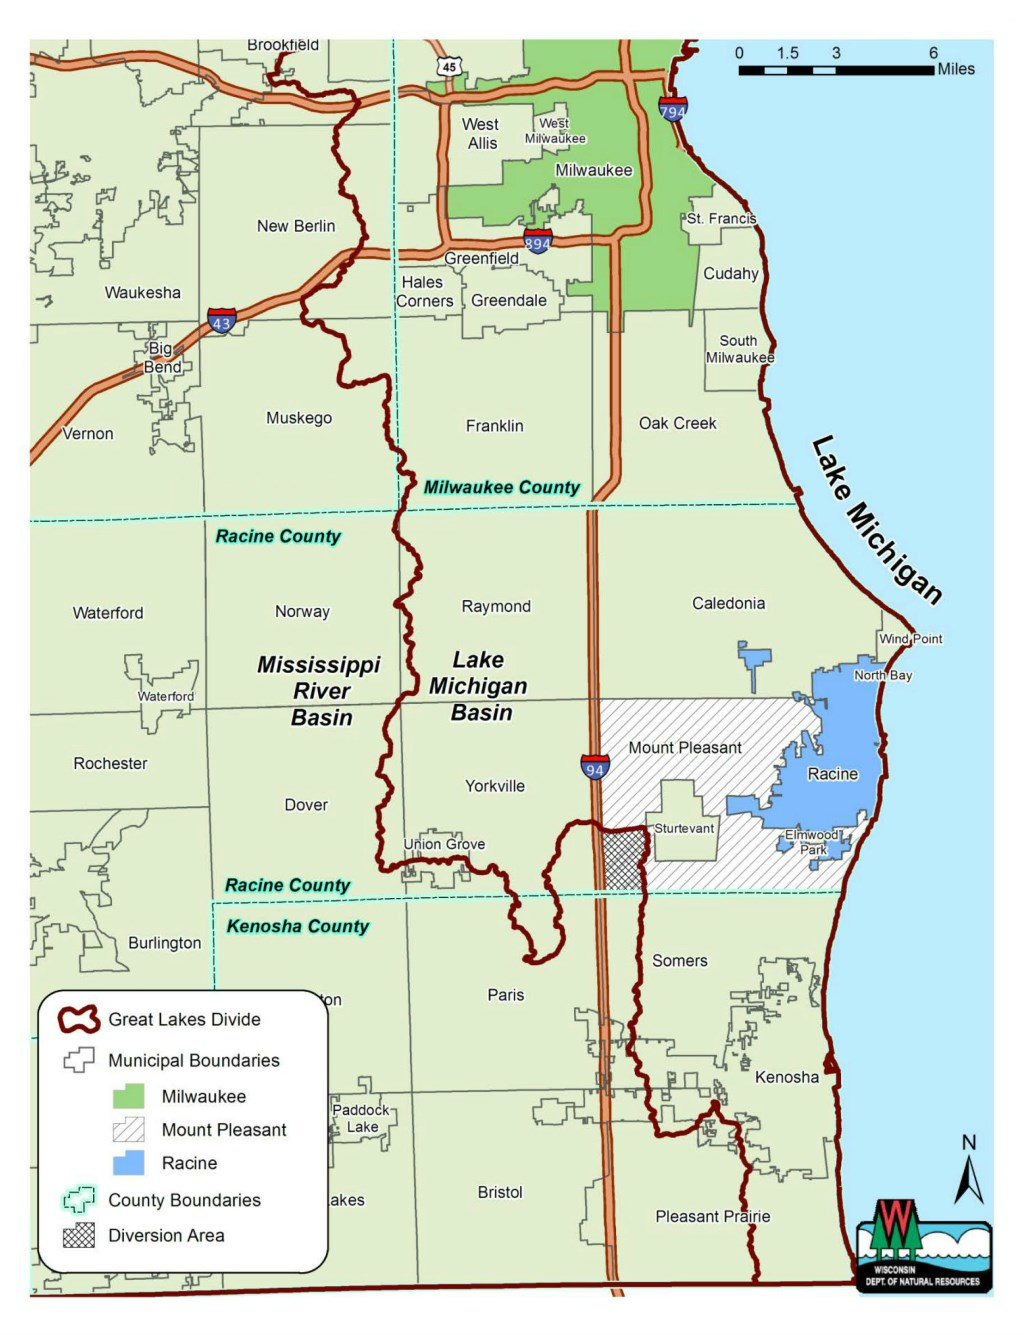 The Foxconn complex is located outside the Great Lakes Basin but would be served by the Racine Water Utility. Map from the Wisconsin Department of Natural Resources.